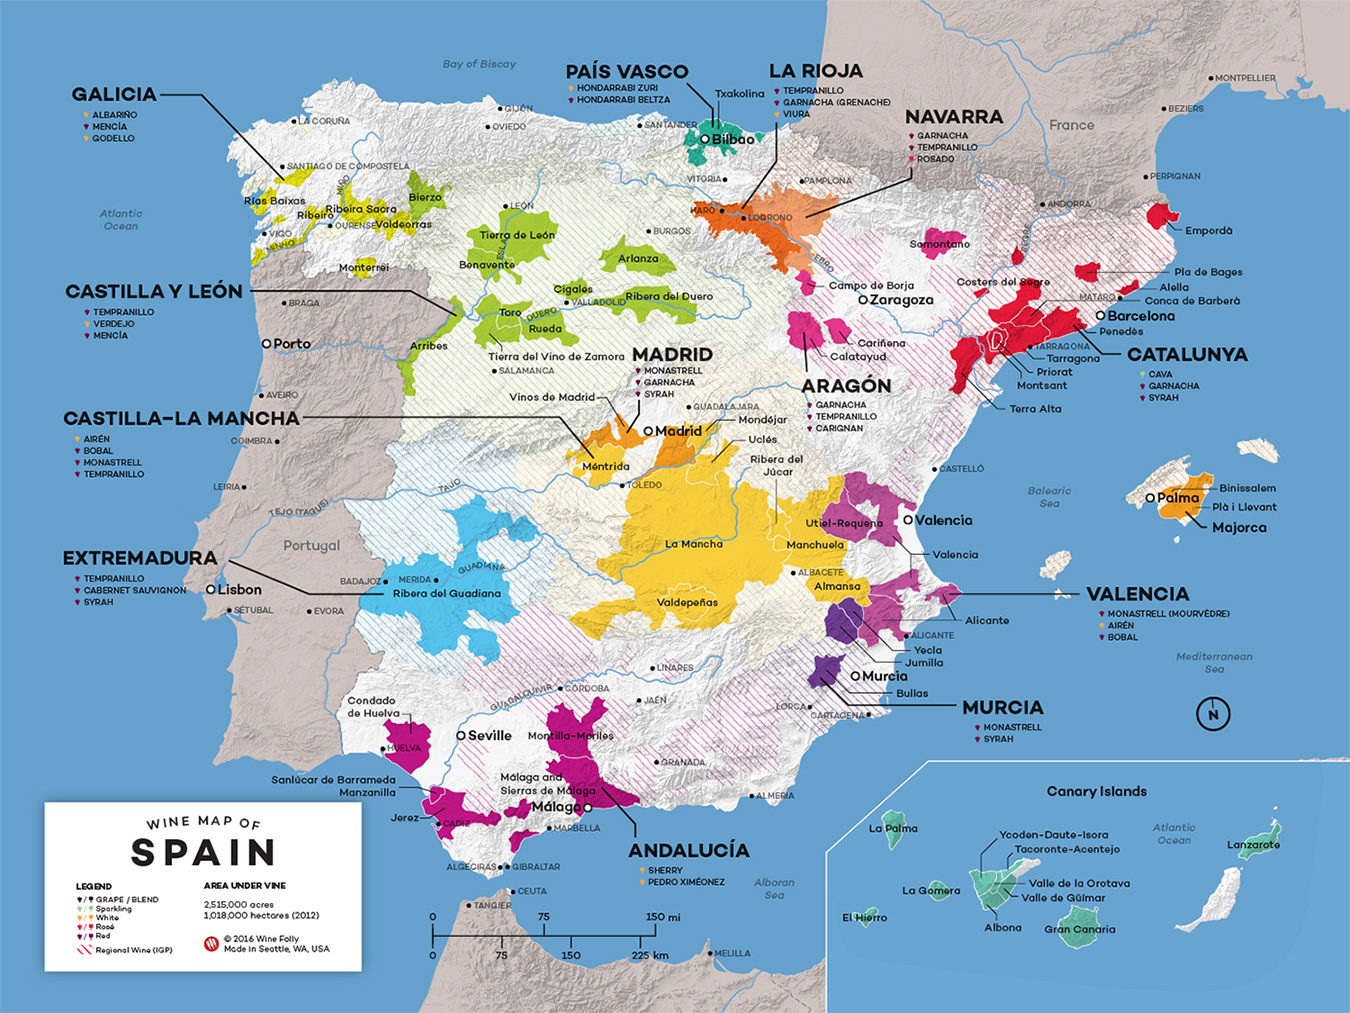 Map of Spain Wine Regions | Wine Folly Outline Map Of Espana In Spanish on map of equatorial guinea in spanish, map of barcelona in spanish, map of paraguay in spanish, map of cities in espana, map of countries that speak spanish, map of the world in spanish, map of china in spanish, map of dominican republic in spanish, map of north america in spanish, map of spanish speaking countries, map of egypt in spanish, map of spanish speaking world, map of united states in spanish, map of austria in spanish, capital of venezuela in spanish, espana capital in spanish, map of trinidad in spanish, map of continents in spanish, map of puerto rico in spanish, map of england in 1500,